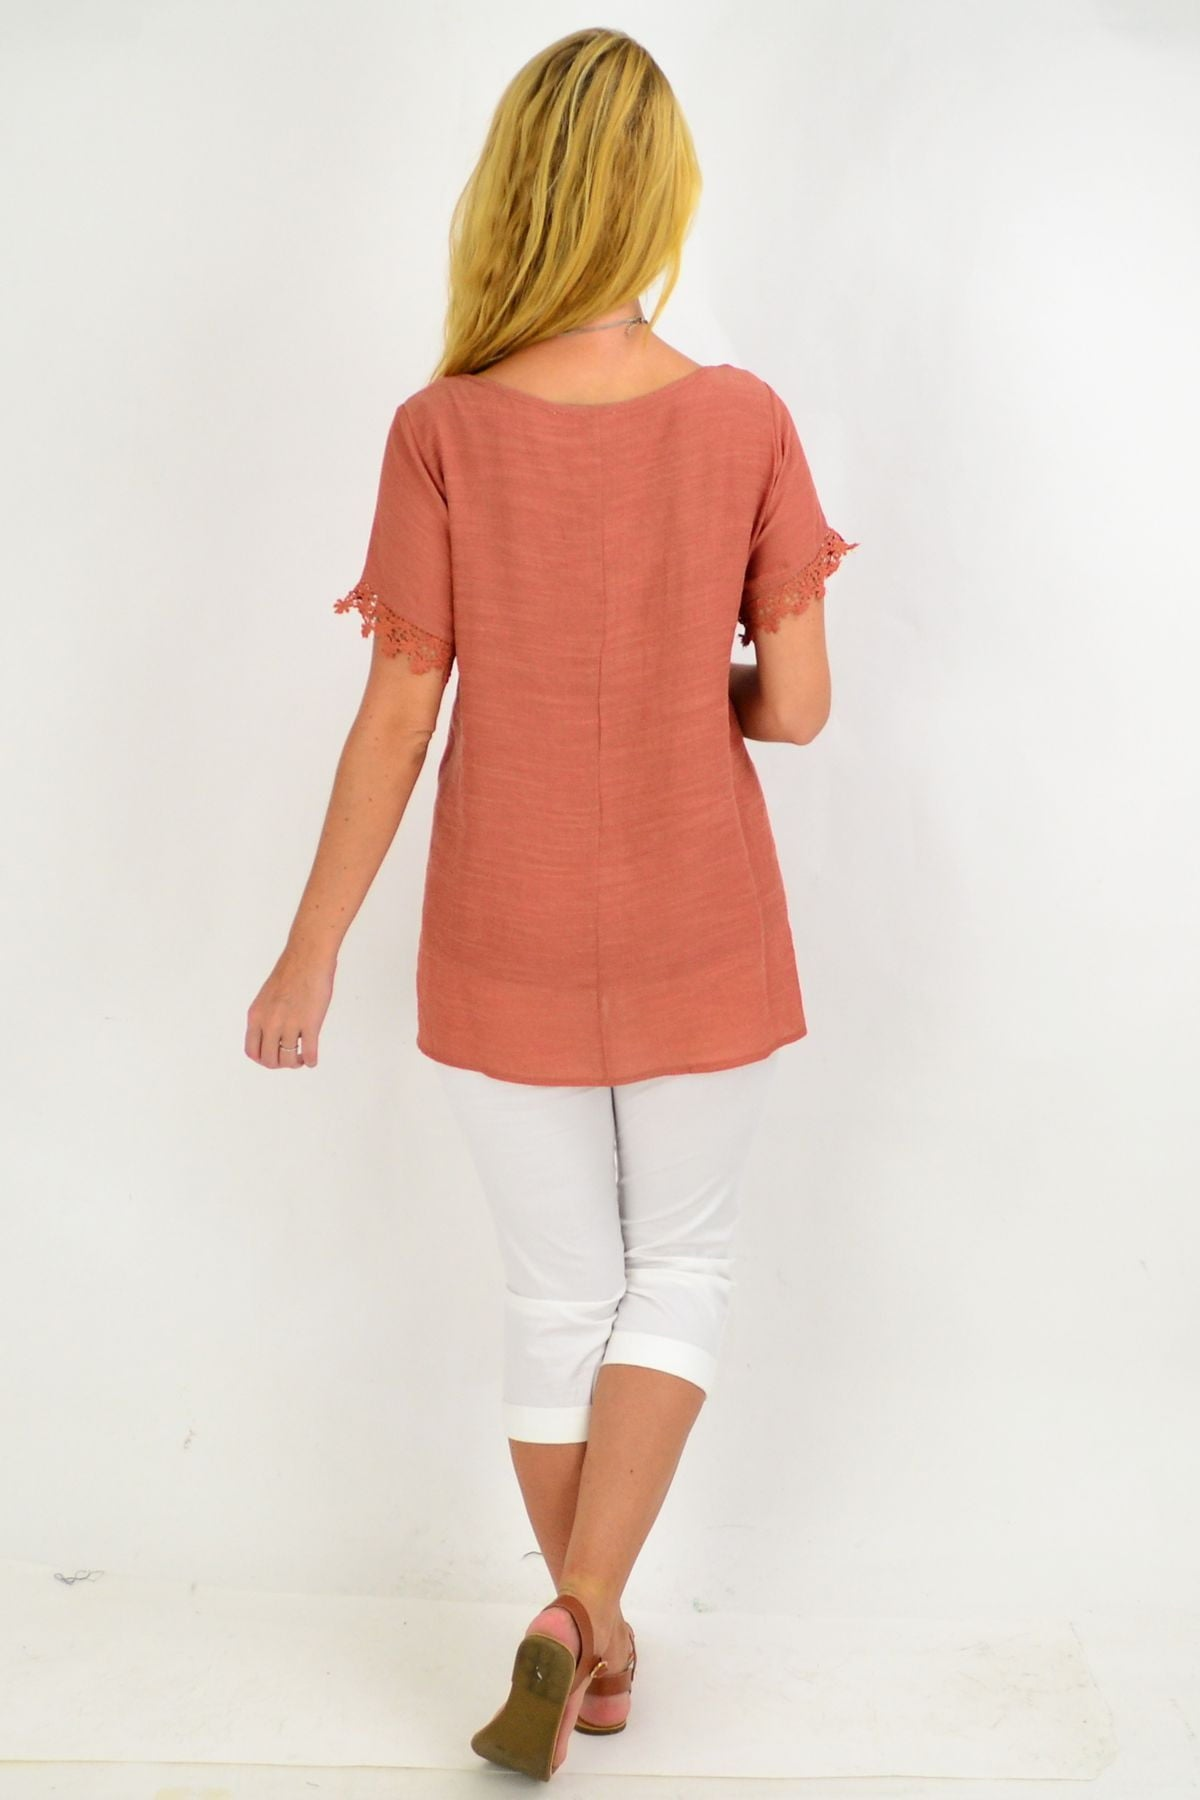 Dark Salmon Lace Trim Tunic Top | I Love Tunics | Tunic Tops | Tunic | Tunic Dresses  | womens clothing online